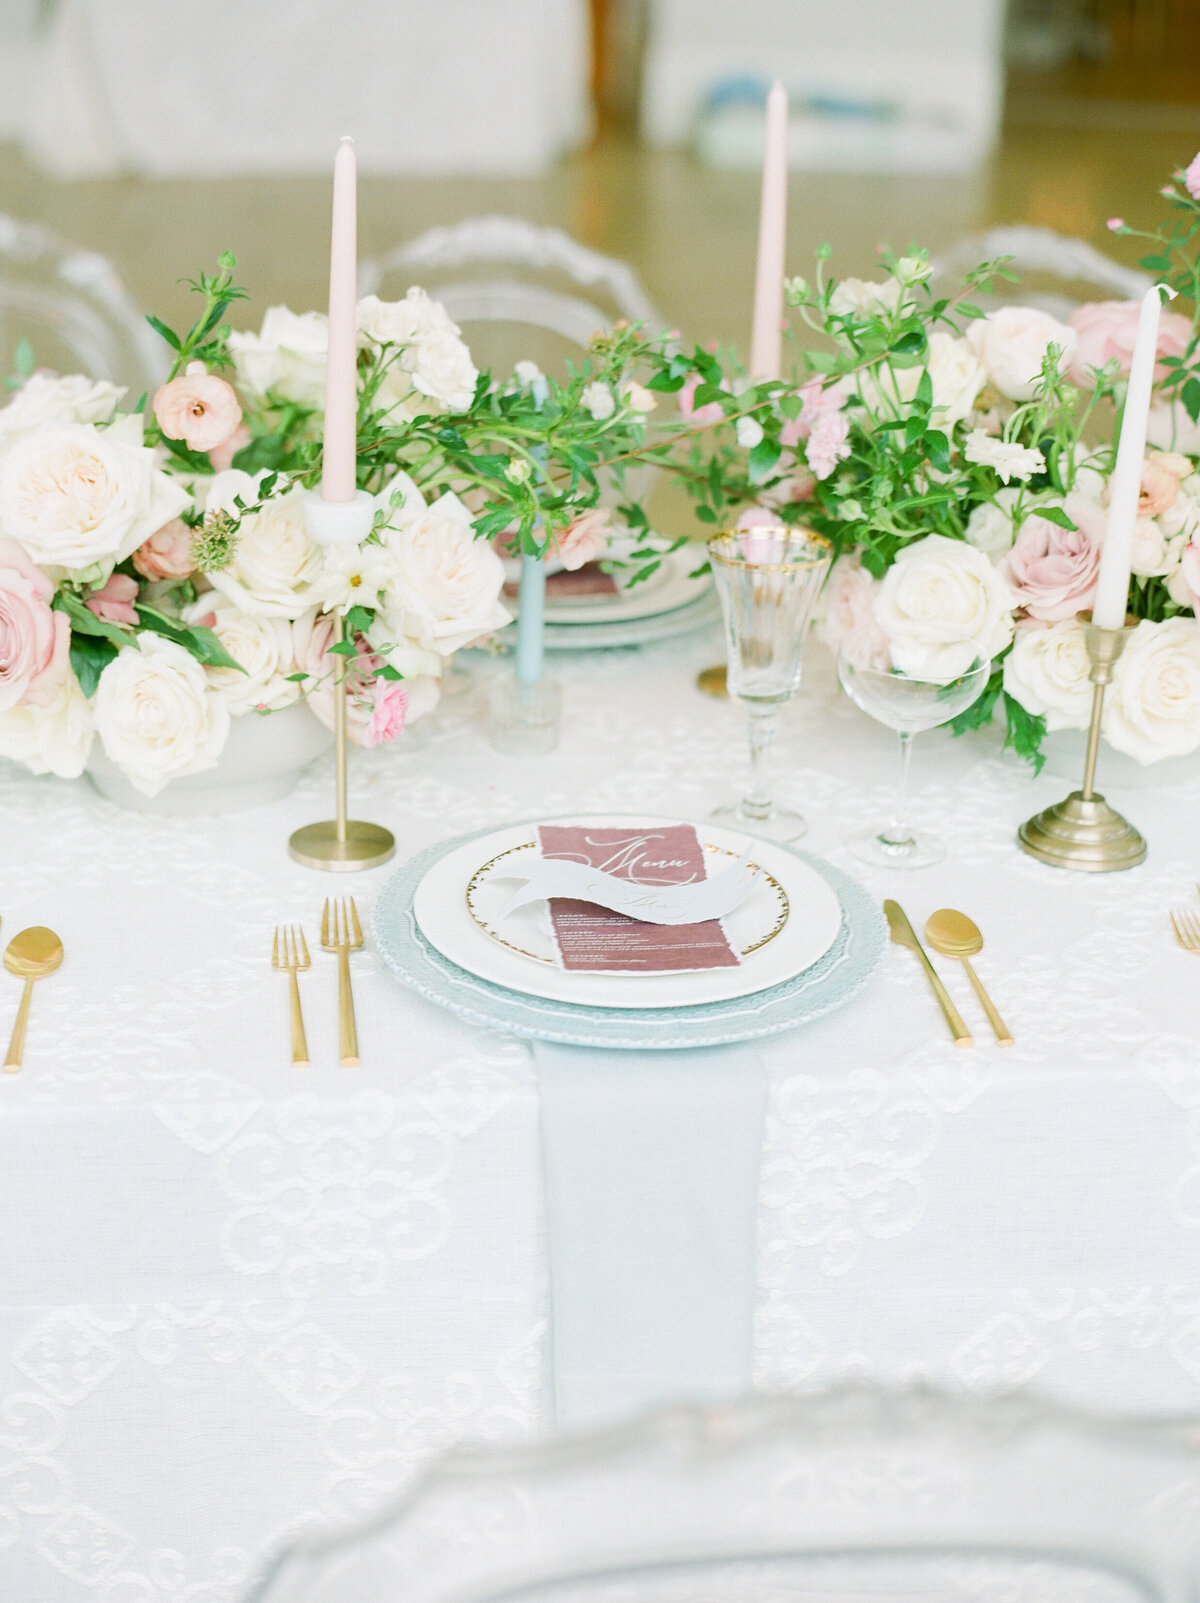 The Olana Nimbus Events Wedding Planning Soft Pastels Table